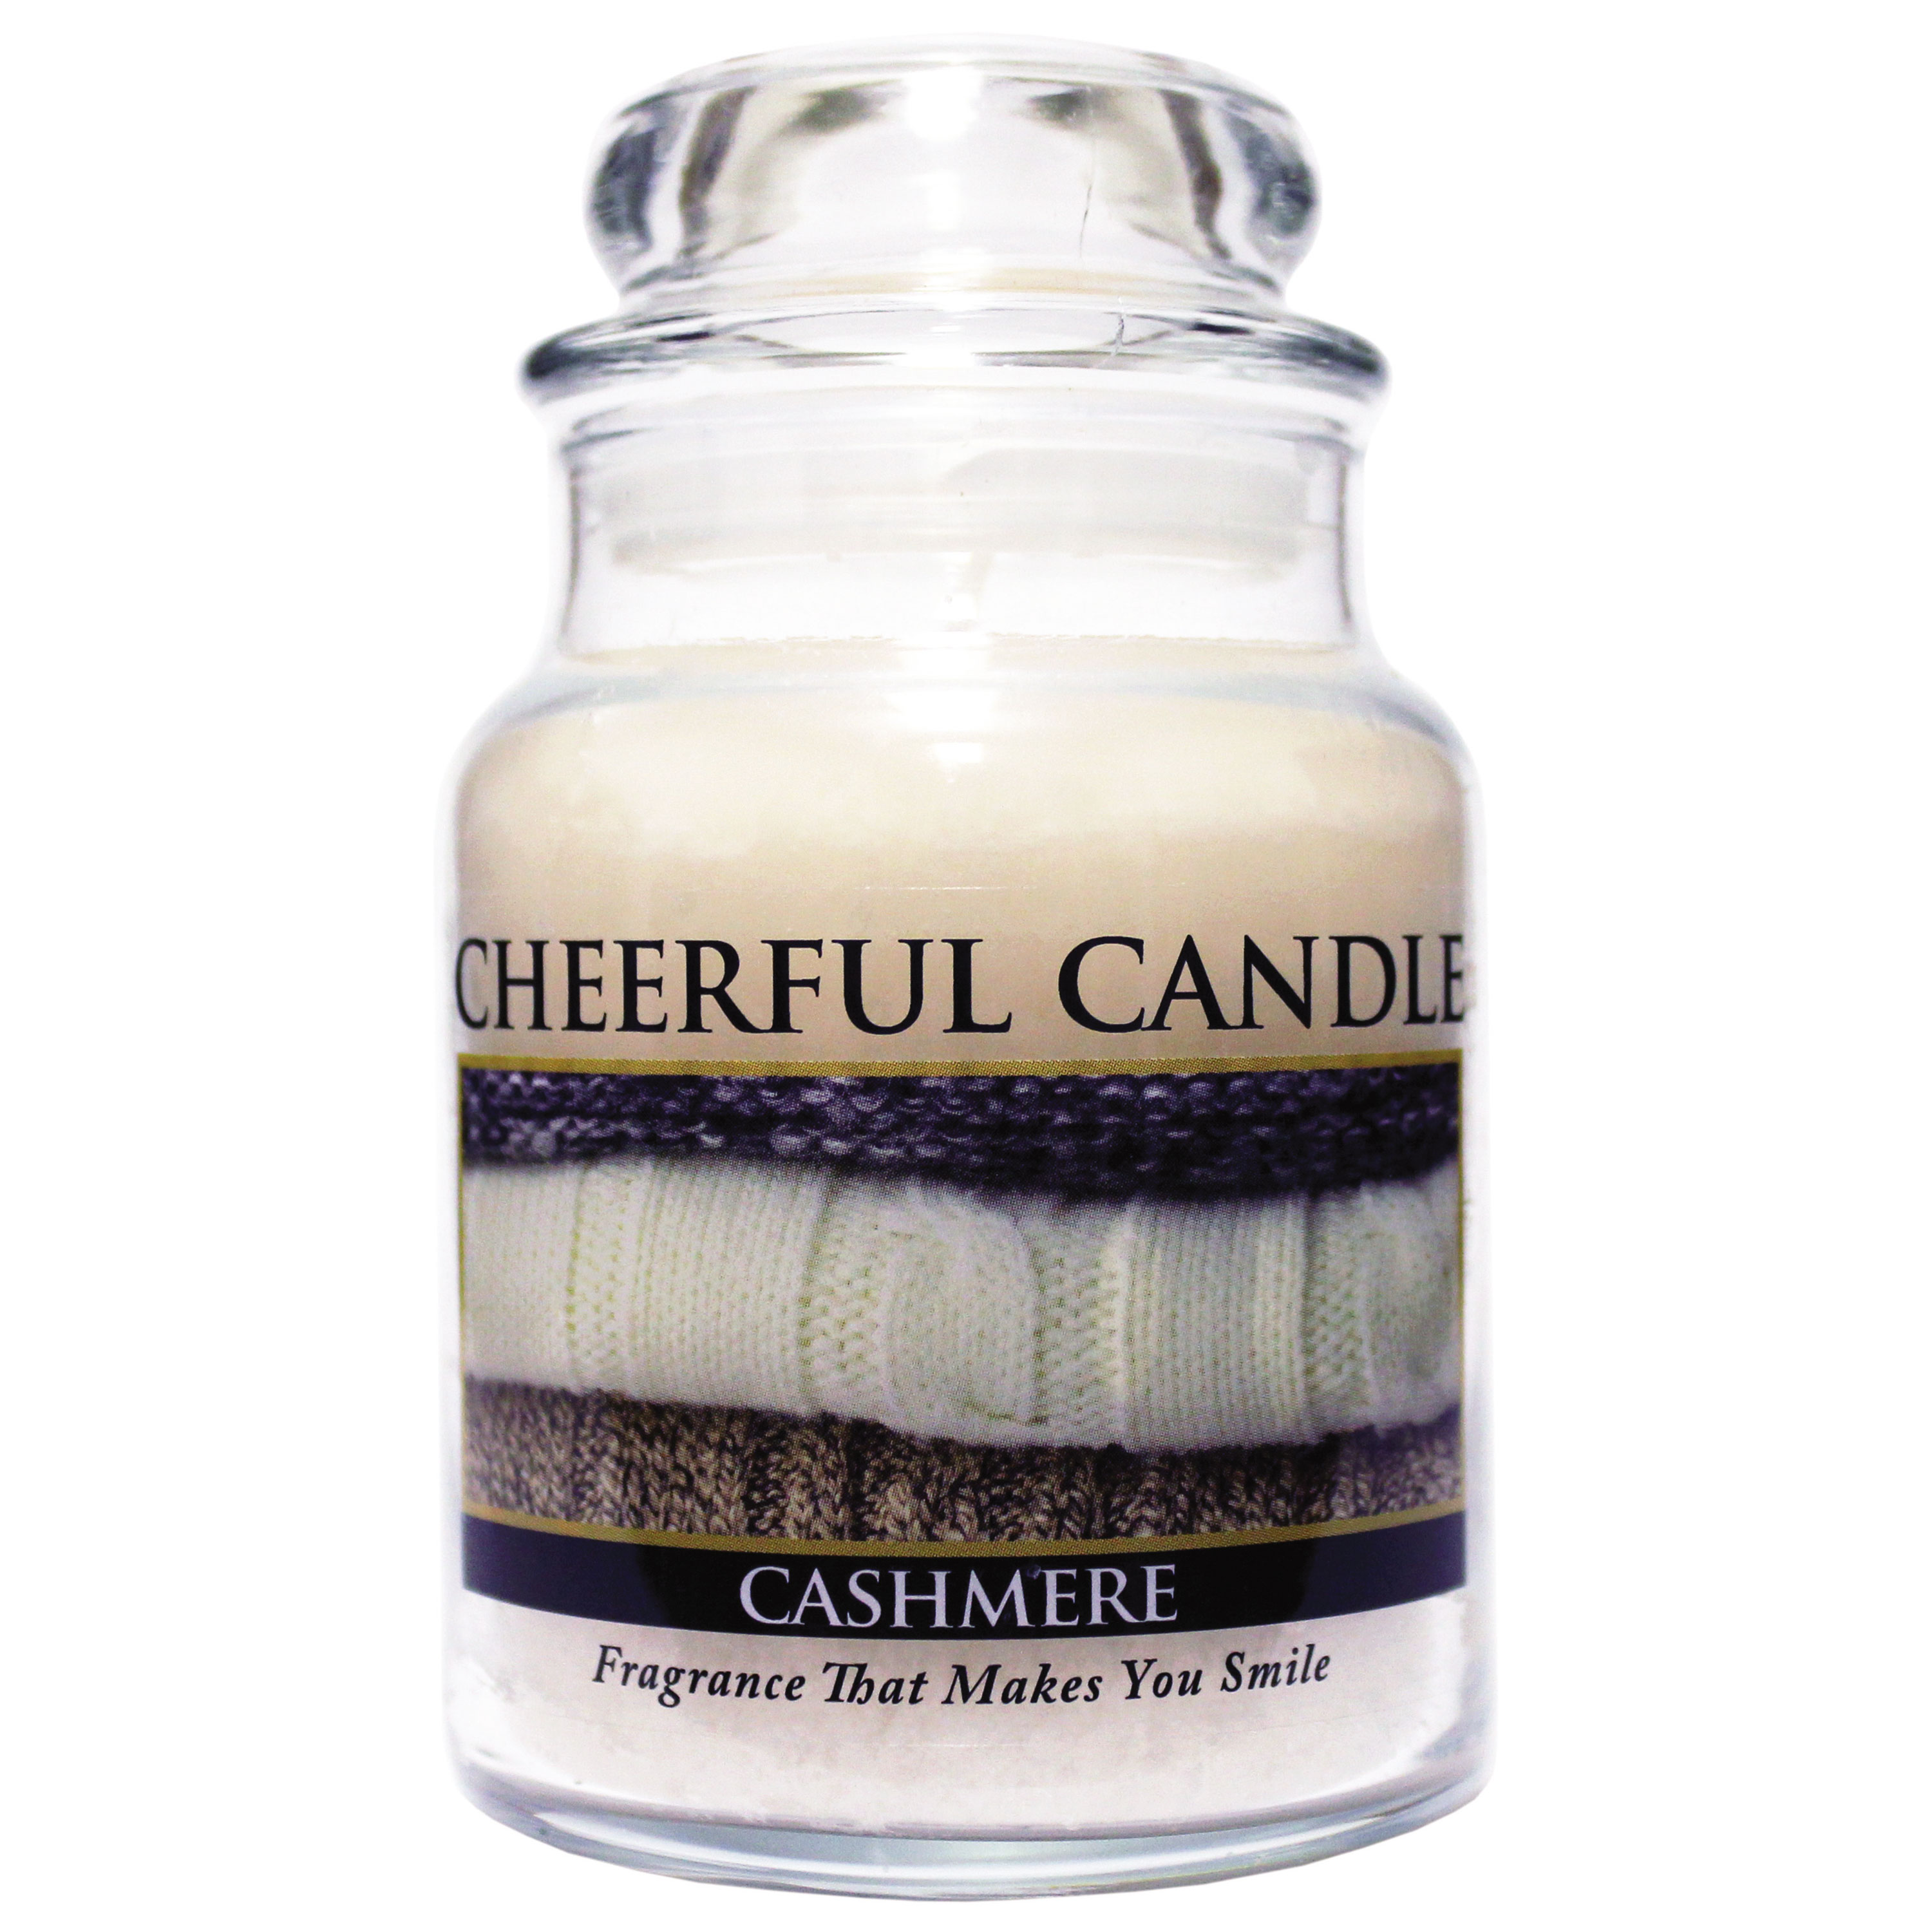 Cashmere 6oz Cheerful Candle